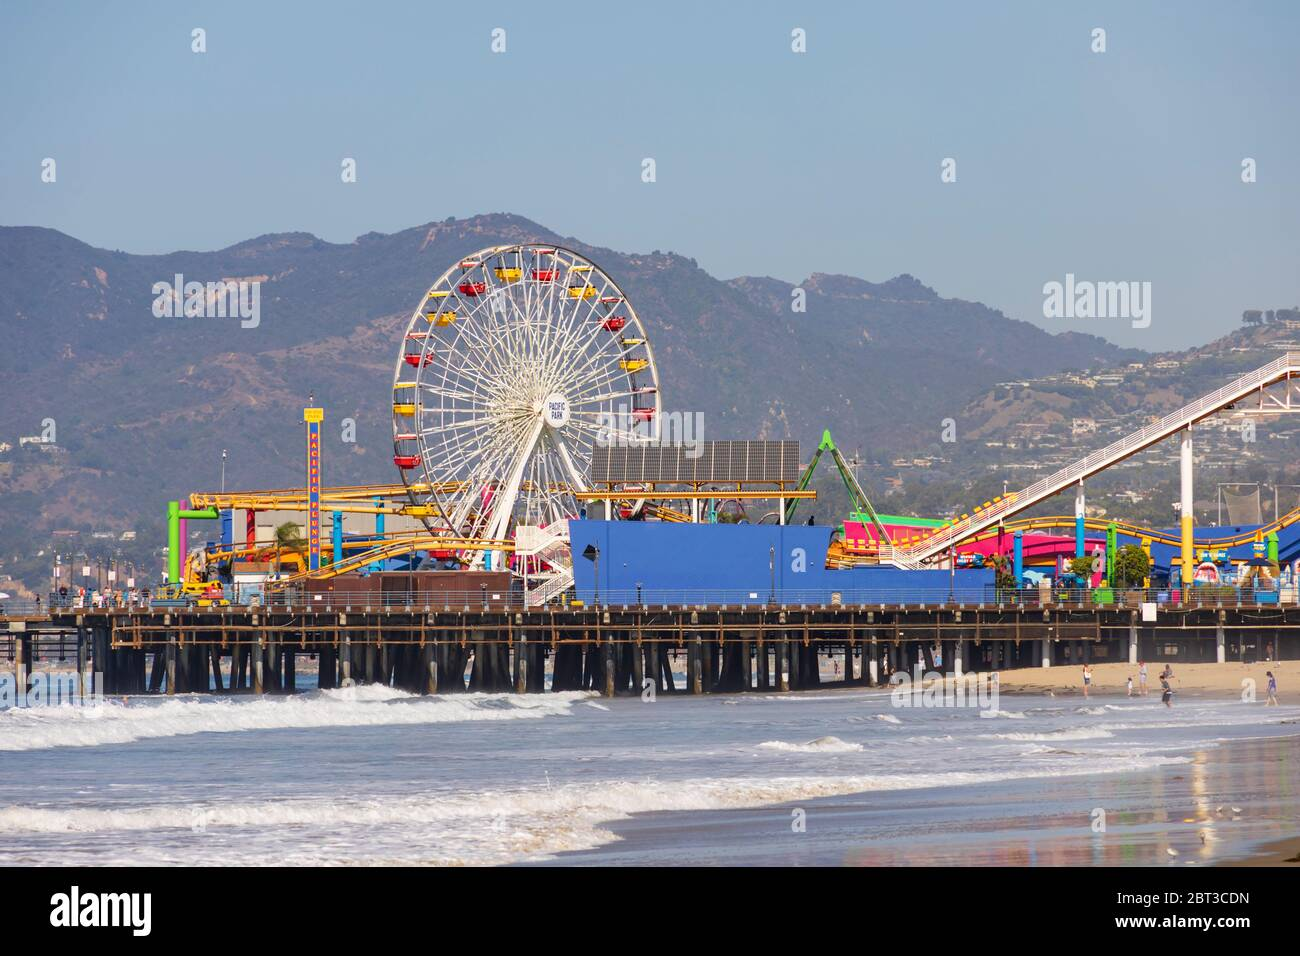 Santa Monica pier and beach, Los Angeles, California, United States of America. Stock Photo